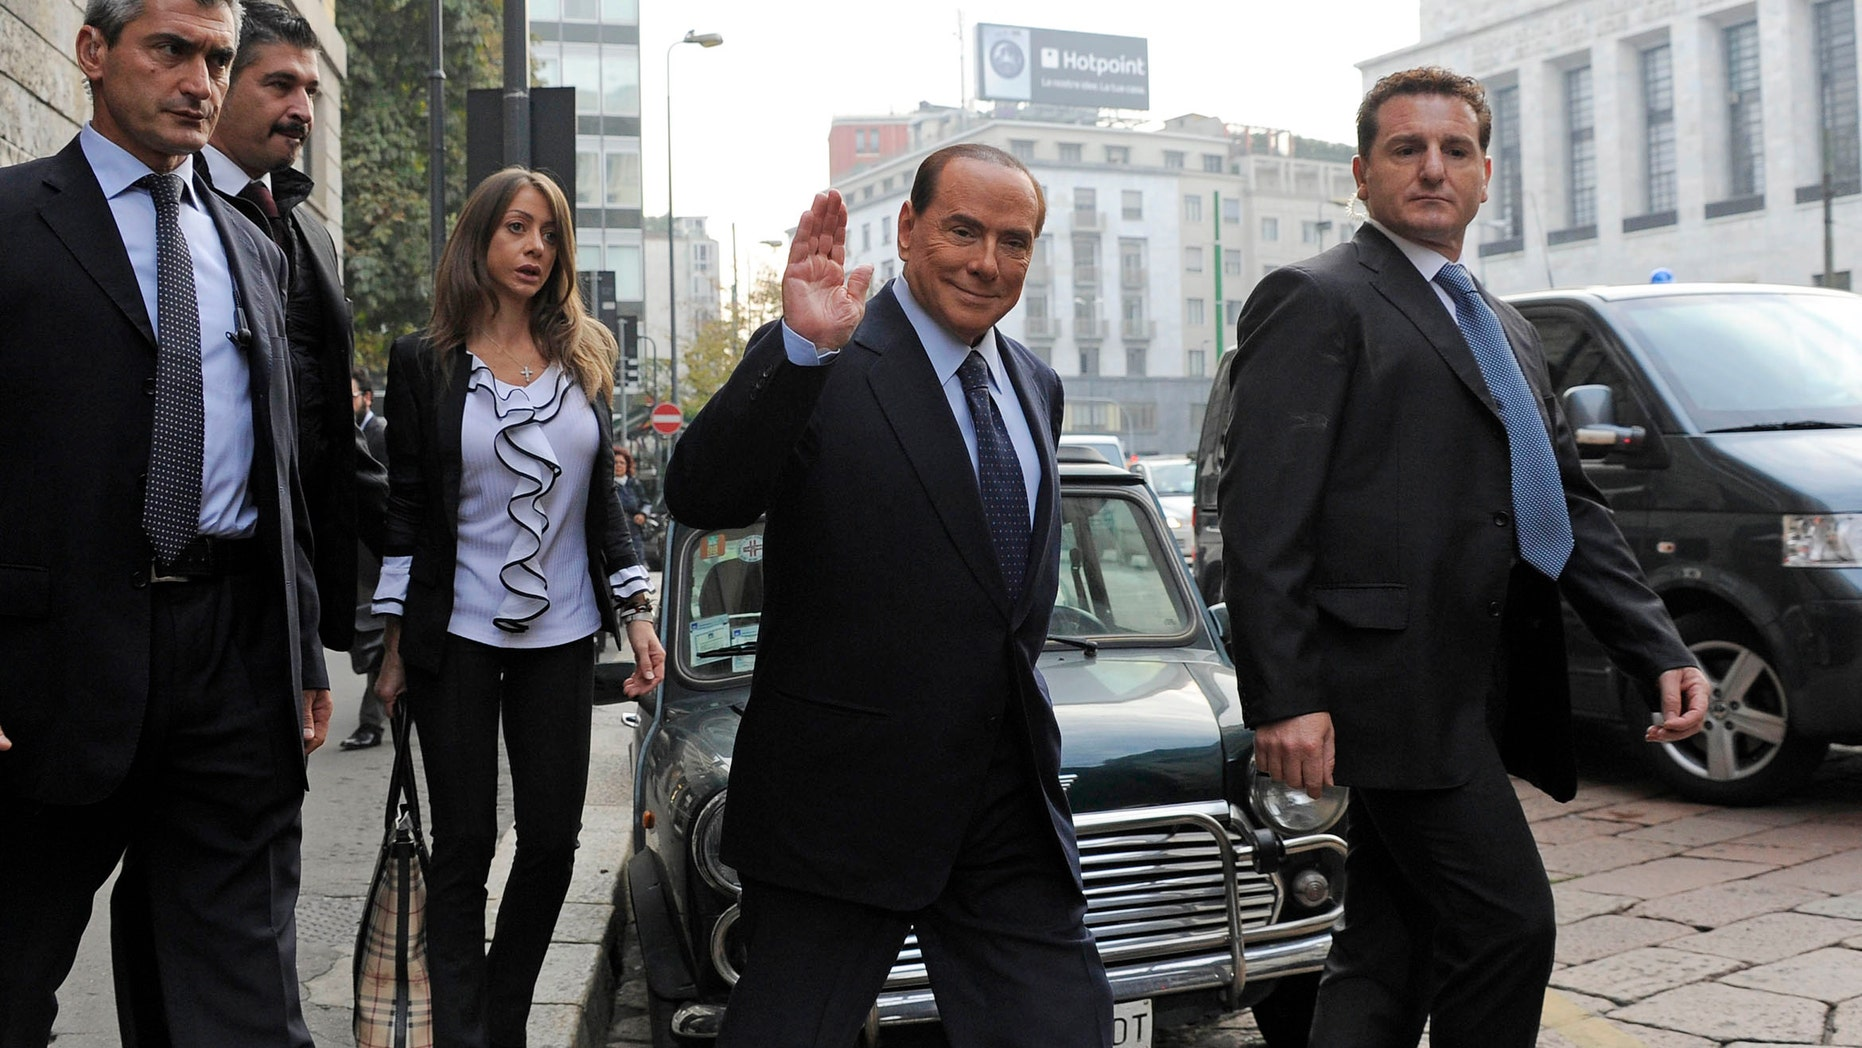 Former Italian Premier Silvio Berlusconi salutes as he arrives for a court hearing in Milan, Italy, Friday, Oct. 19, 2012. Berlusconi has denied in court having had sex with an underage Moroccan girl, or ever paying for sex with any guest at his villa near Milan, and insisted that no gathering of a sexual nature took place at his residence. Berlusconi made the remarks during a rare appearance at his ongoing trial on charges of having paid for sex with teenager Karima el-Mahroug and using his influence to cover it up. (AP Photo/Gian Mattia D'Alberto, Lapresse) ITALY OUT